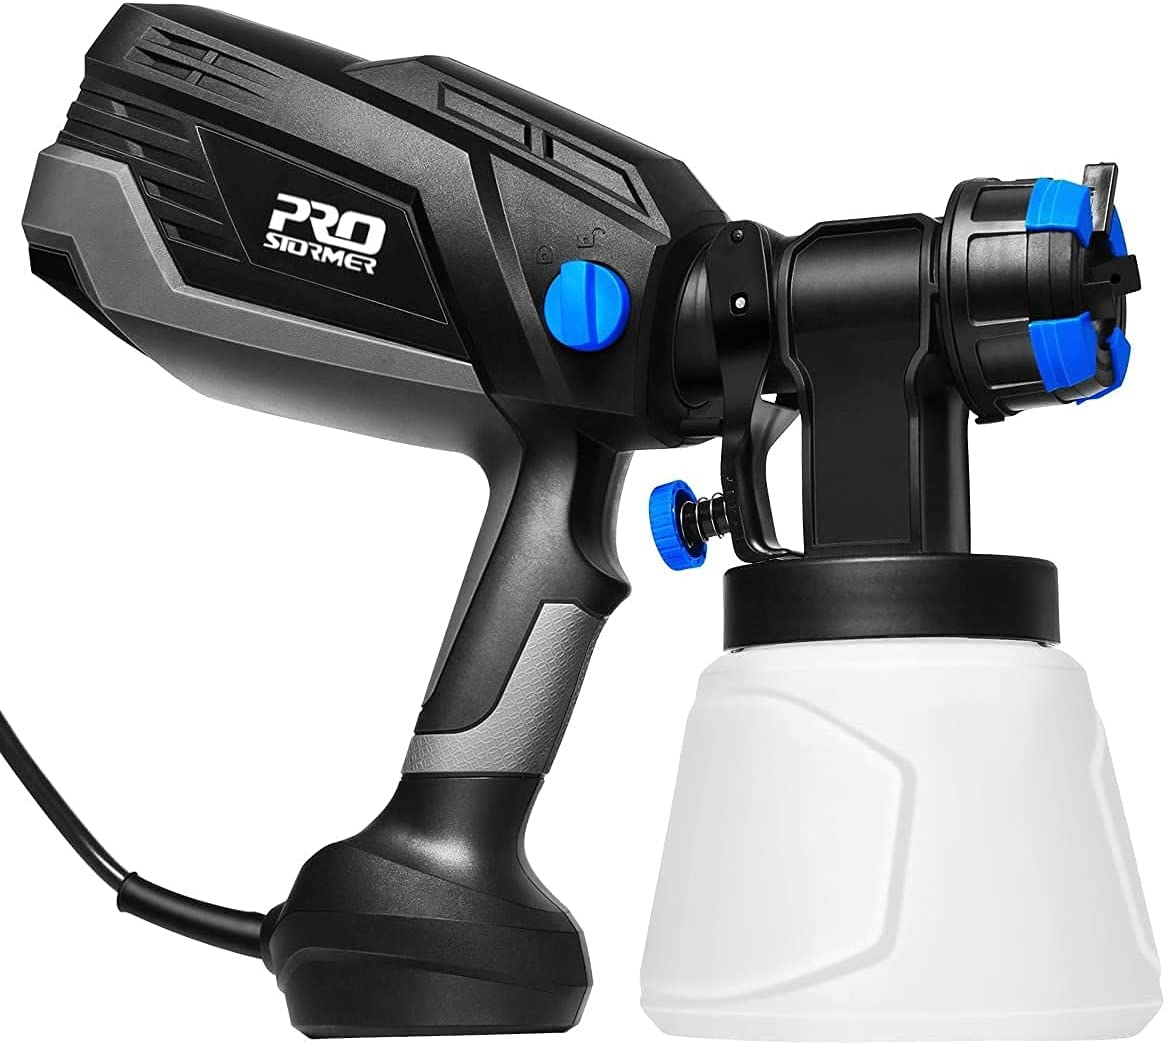 Electric Paint Sprayer PROSTORMER ,600W High Power Paint Tool ,Easy to Carry for Spray and Remove Clean ,with 3 Spraying Pattern and 4 Nozzle Sizes ,for Indoor Interior ,Fence ,Woodcraft etc